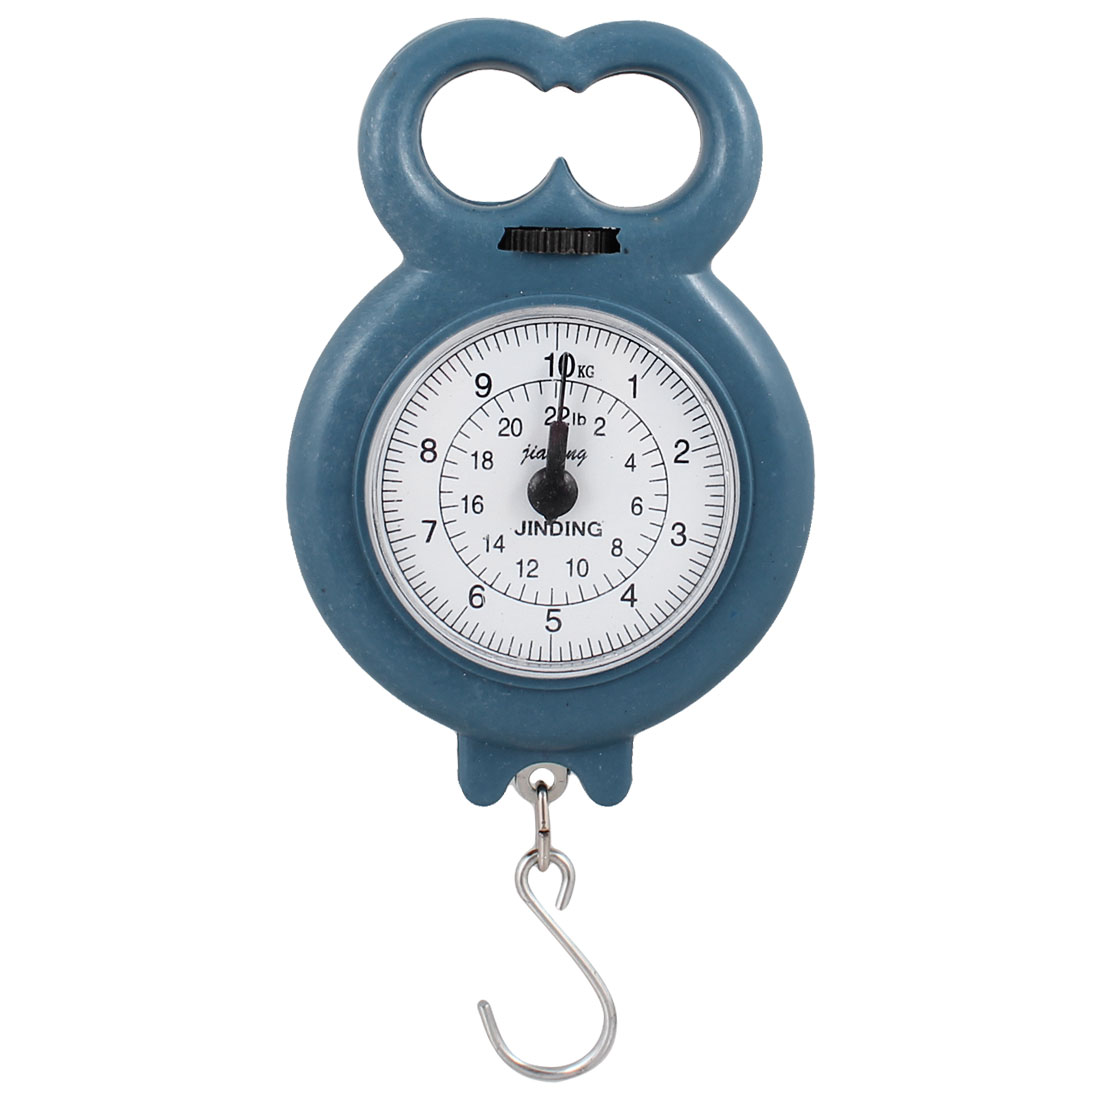 Round Dial Weight Luggage Fishing Analog Hanging Scale 10kg 22lb Dark Teal Color